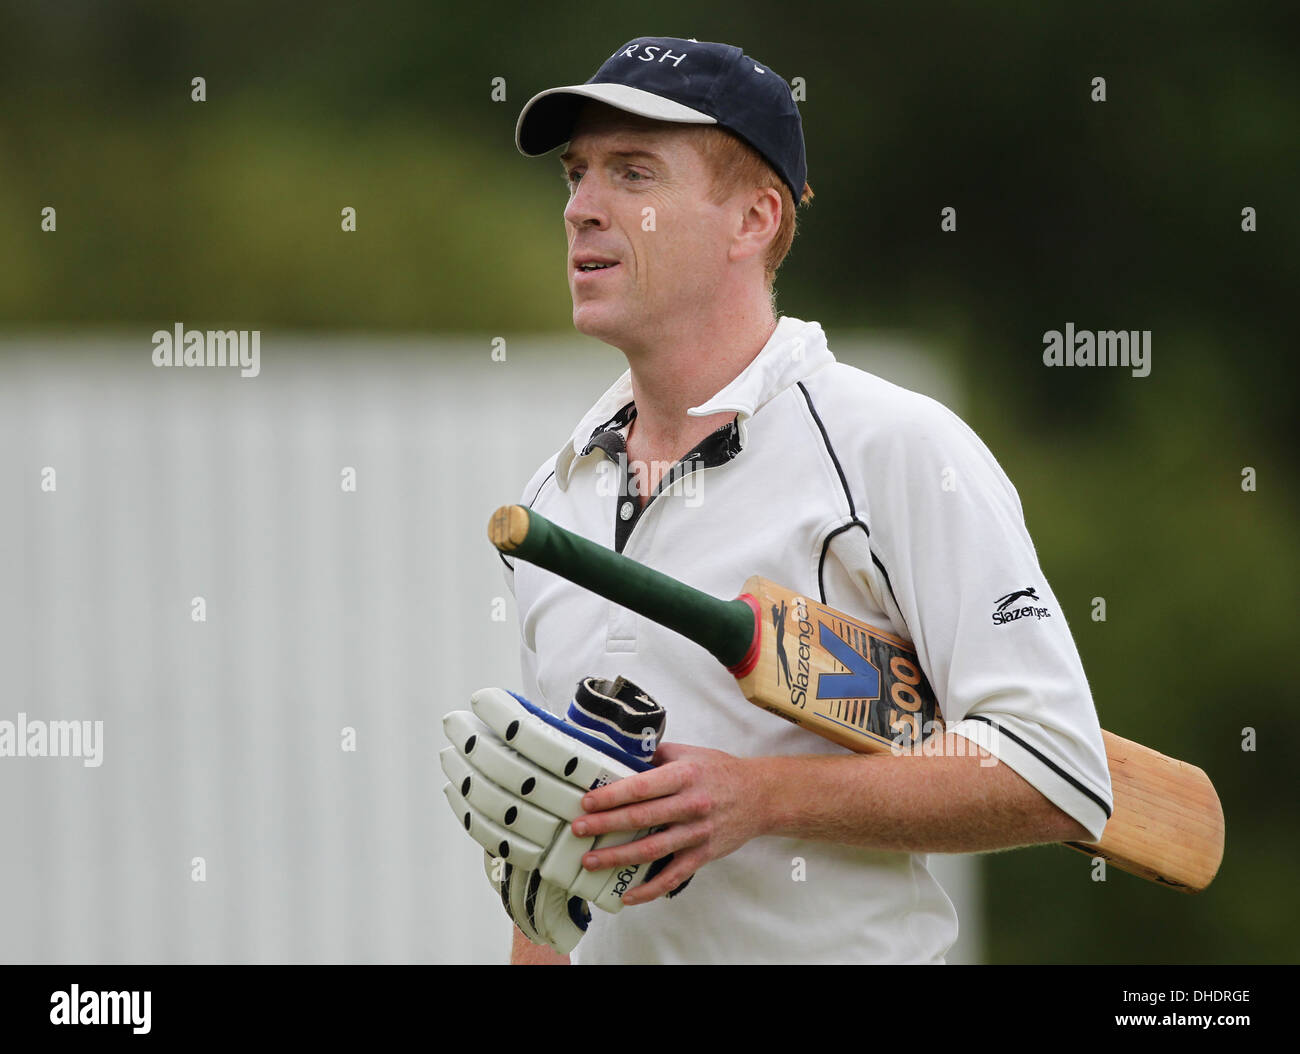 Actor Damian Lewis walks off the cricket field with his cricket gloves and his bat tucked under his arm. - Stock Image